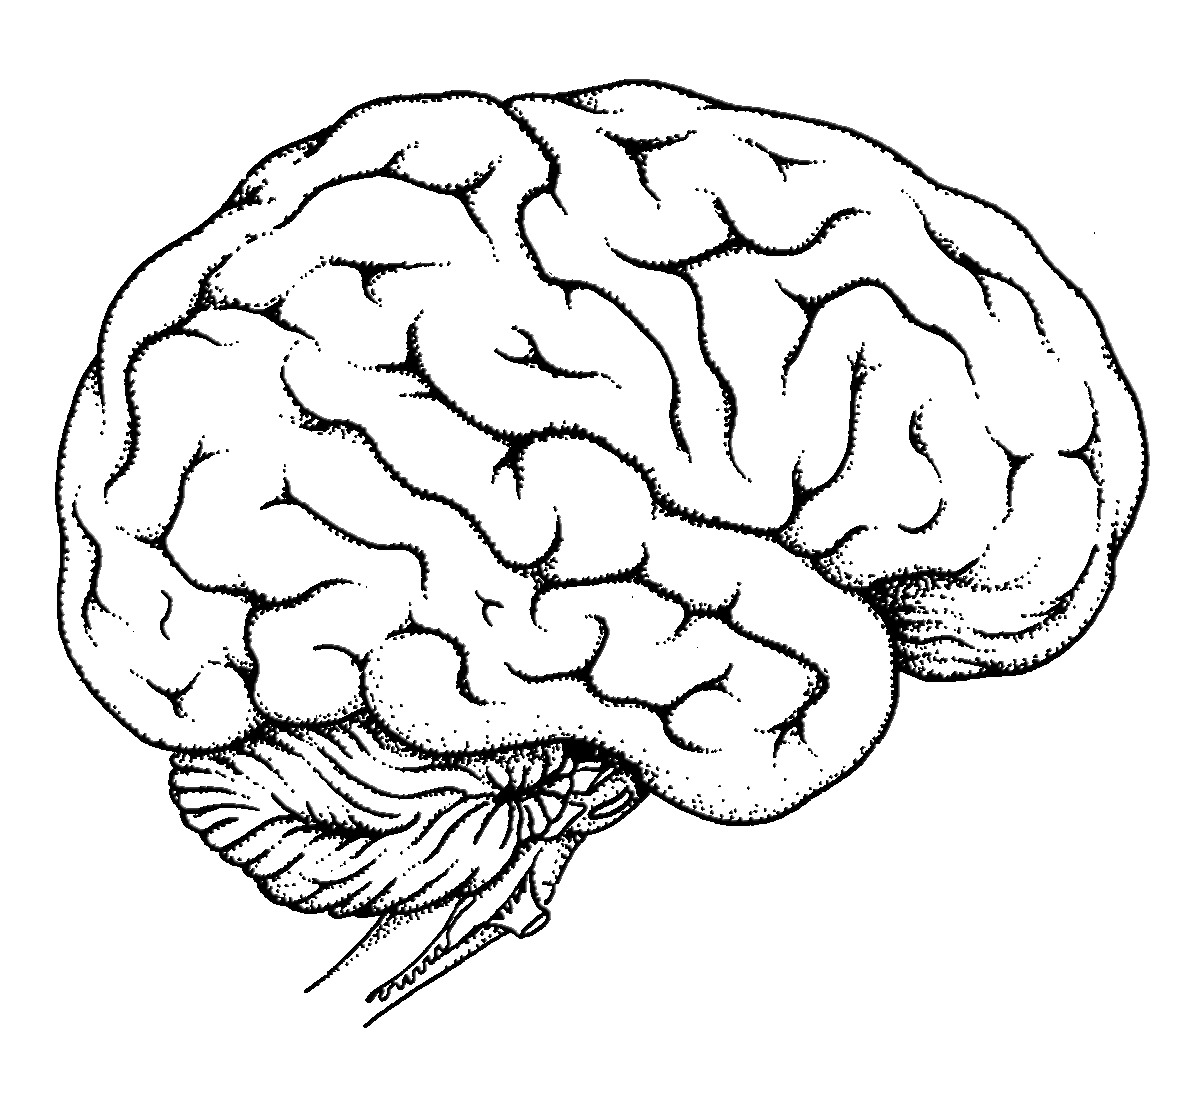 Coloring Pages  Staggering Brain Anatomy Coloring Pages  Brain